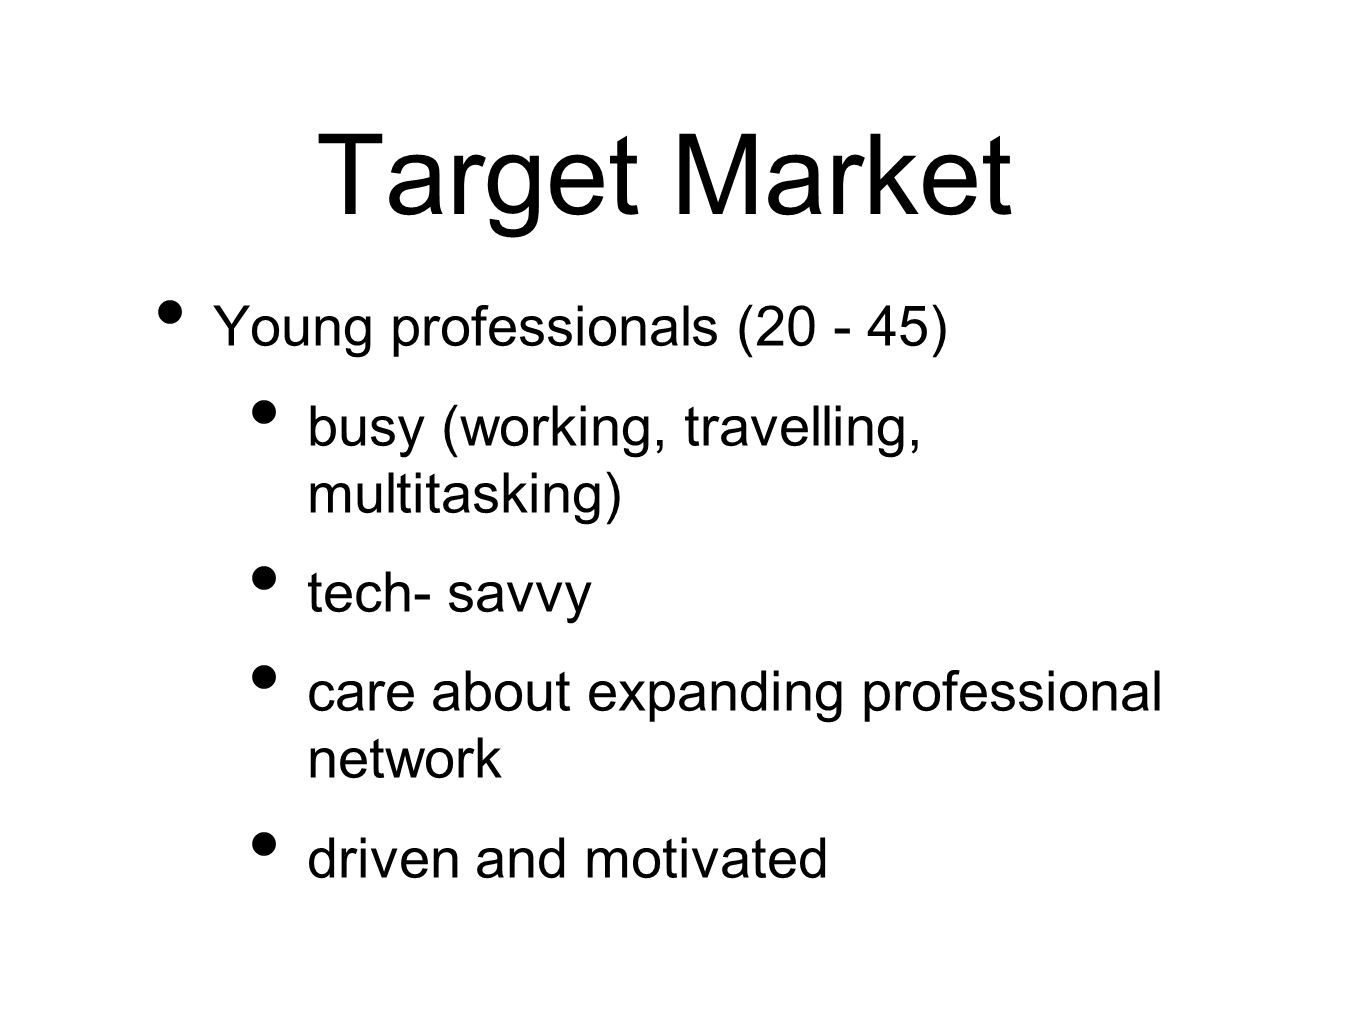 Target Market Young professionals (20 - 45) busy (working, travelling, multitasking) tech- savvy care about expanding professional network driven and motivated